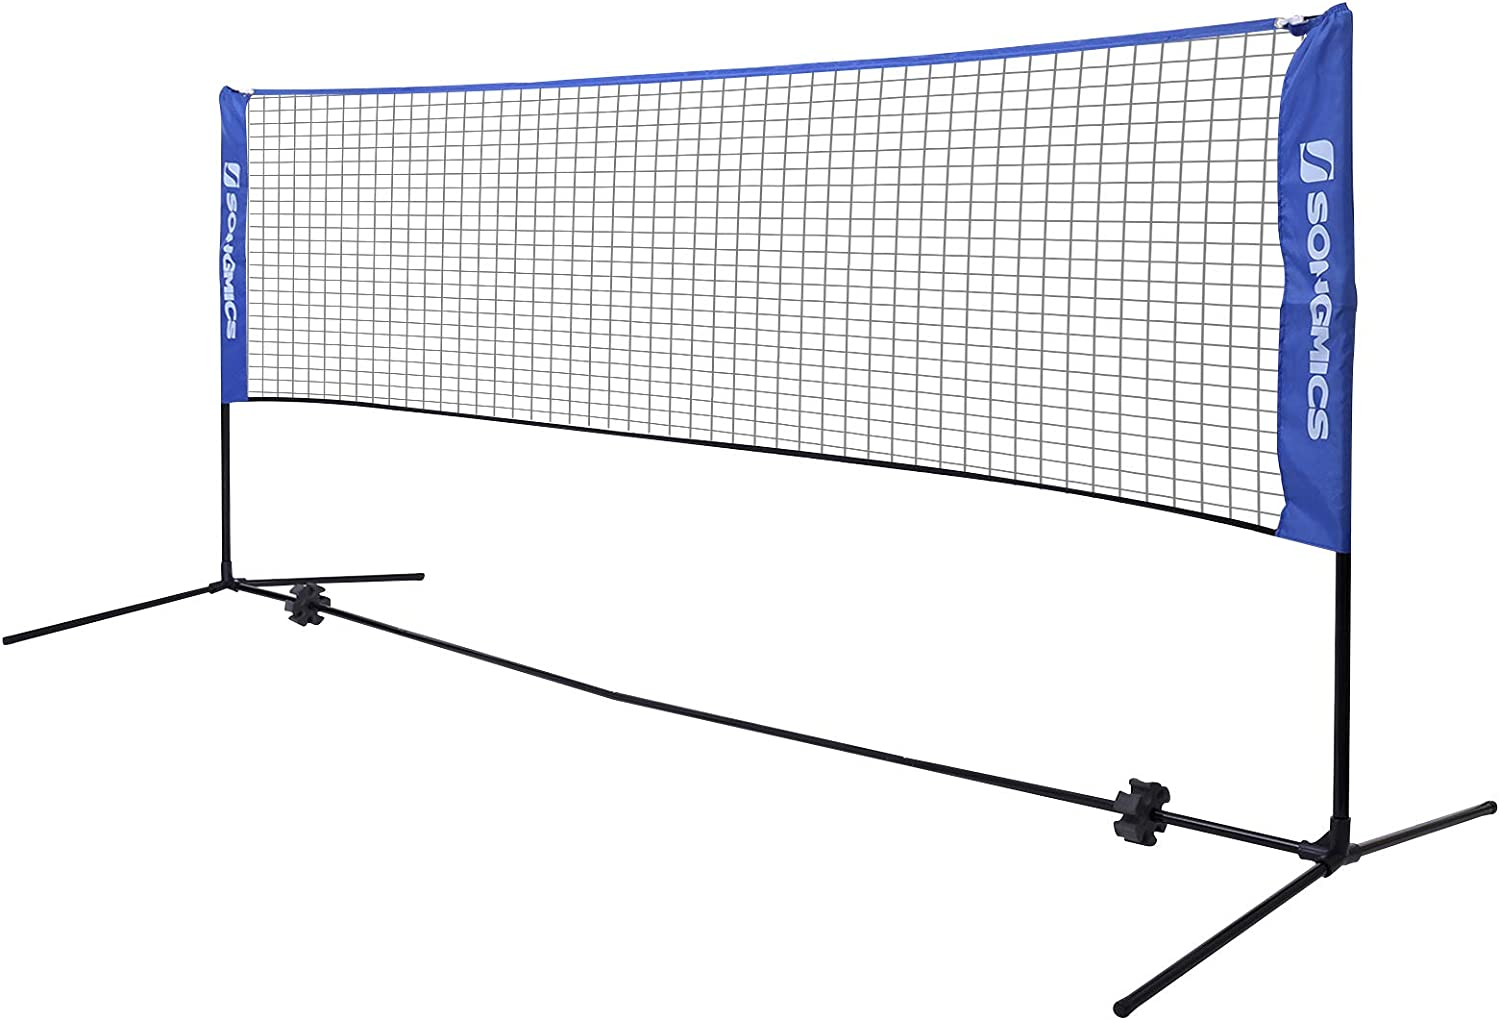 SONGMICS Badminton Net Set, Portable Sports Set for Badminton, Tennis, Kids Volleyball, Pickleball, Easy Setup, Nylon Net with Poles for Indoor Outdoor Court : Sports & Outdoors